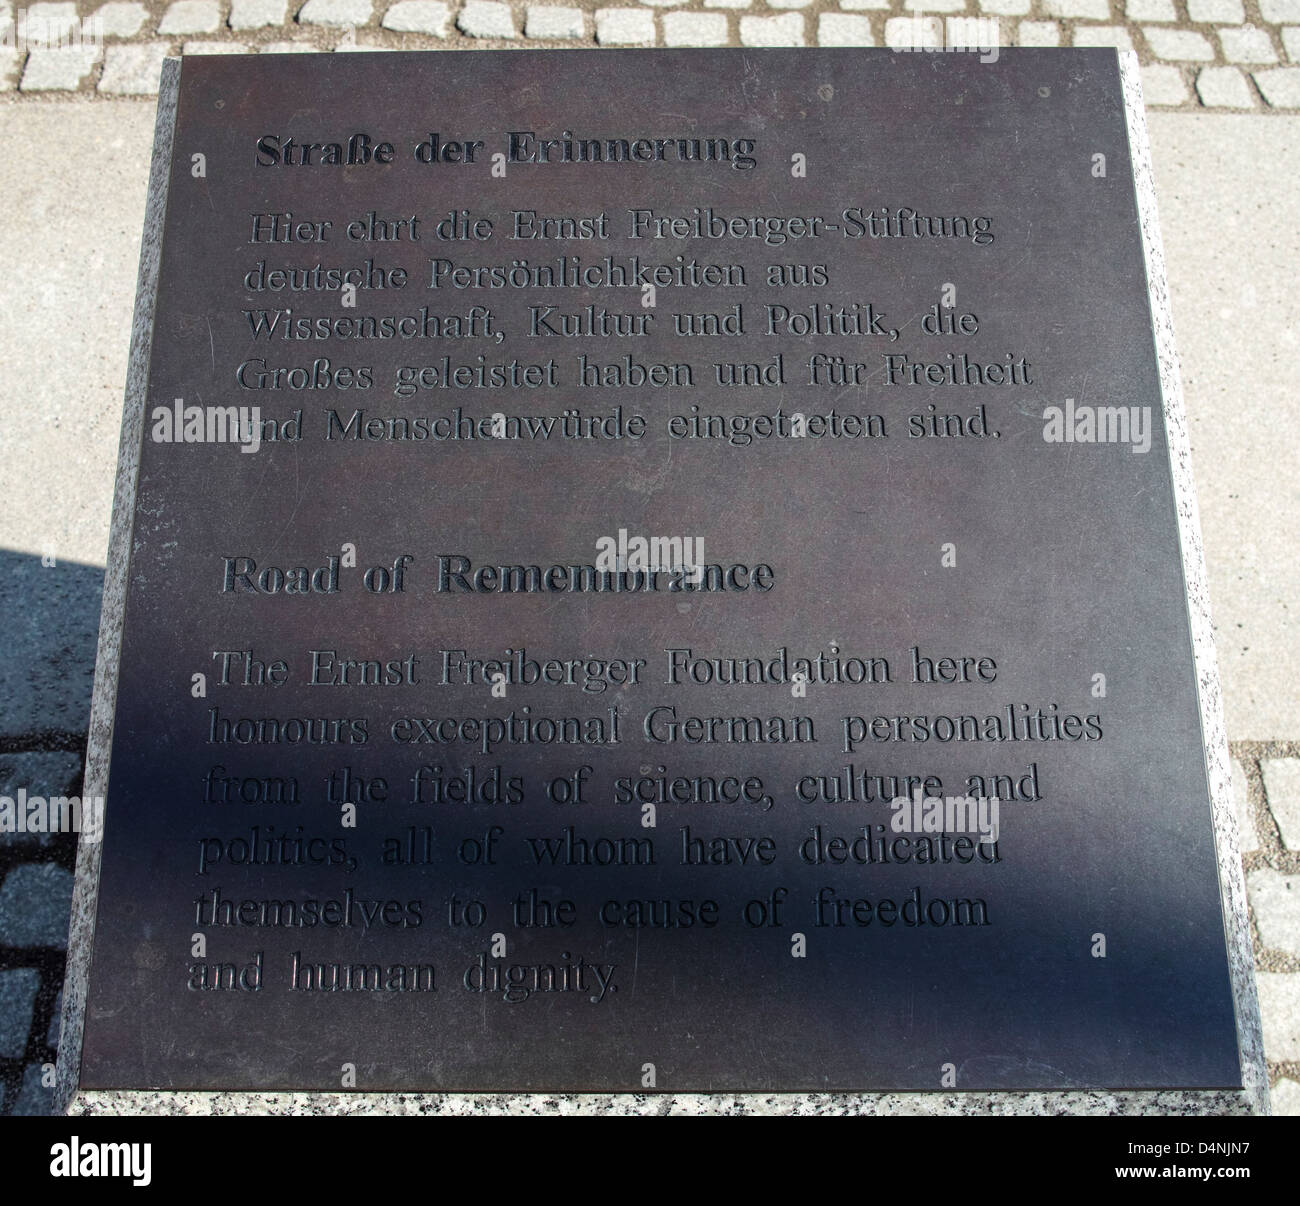 Info sign a the entrance to Strasse der Erinnerung (Road of Rememberance) alley in Berlin. - Stock Image